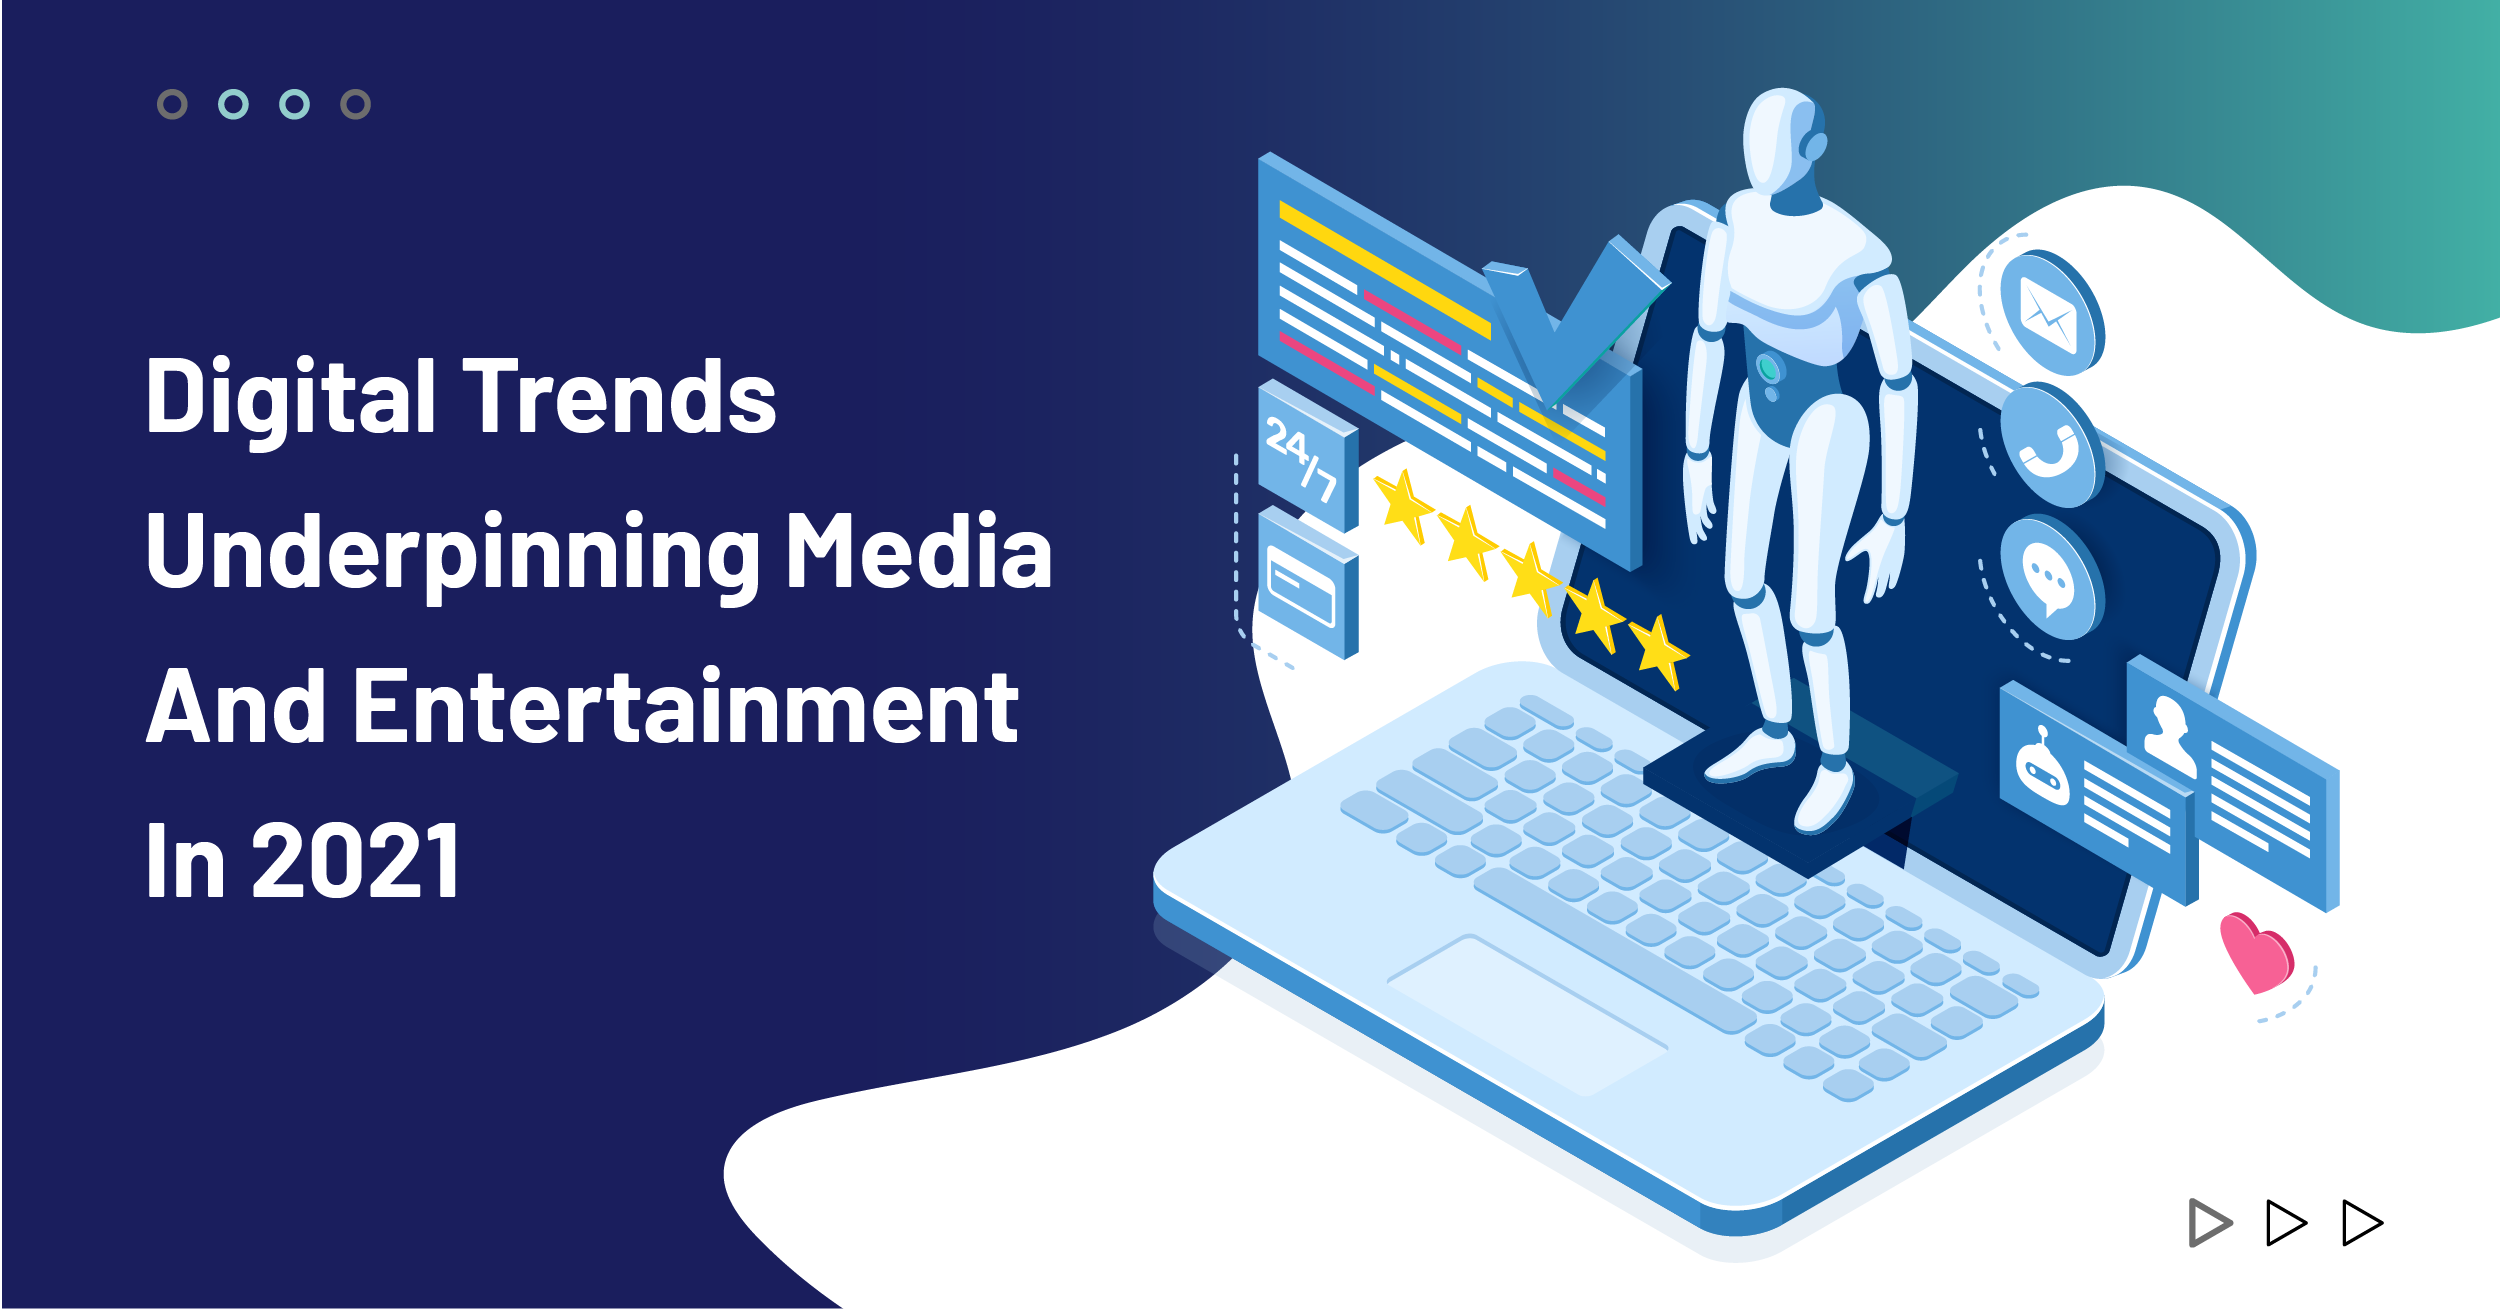 Digital Trends Underpinning Media and Entertainment In 2021